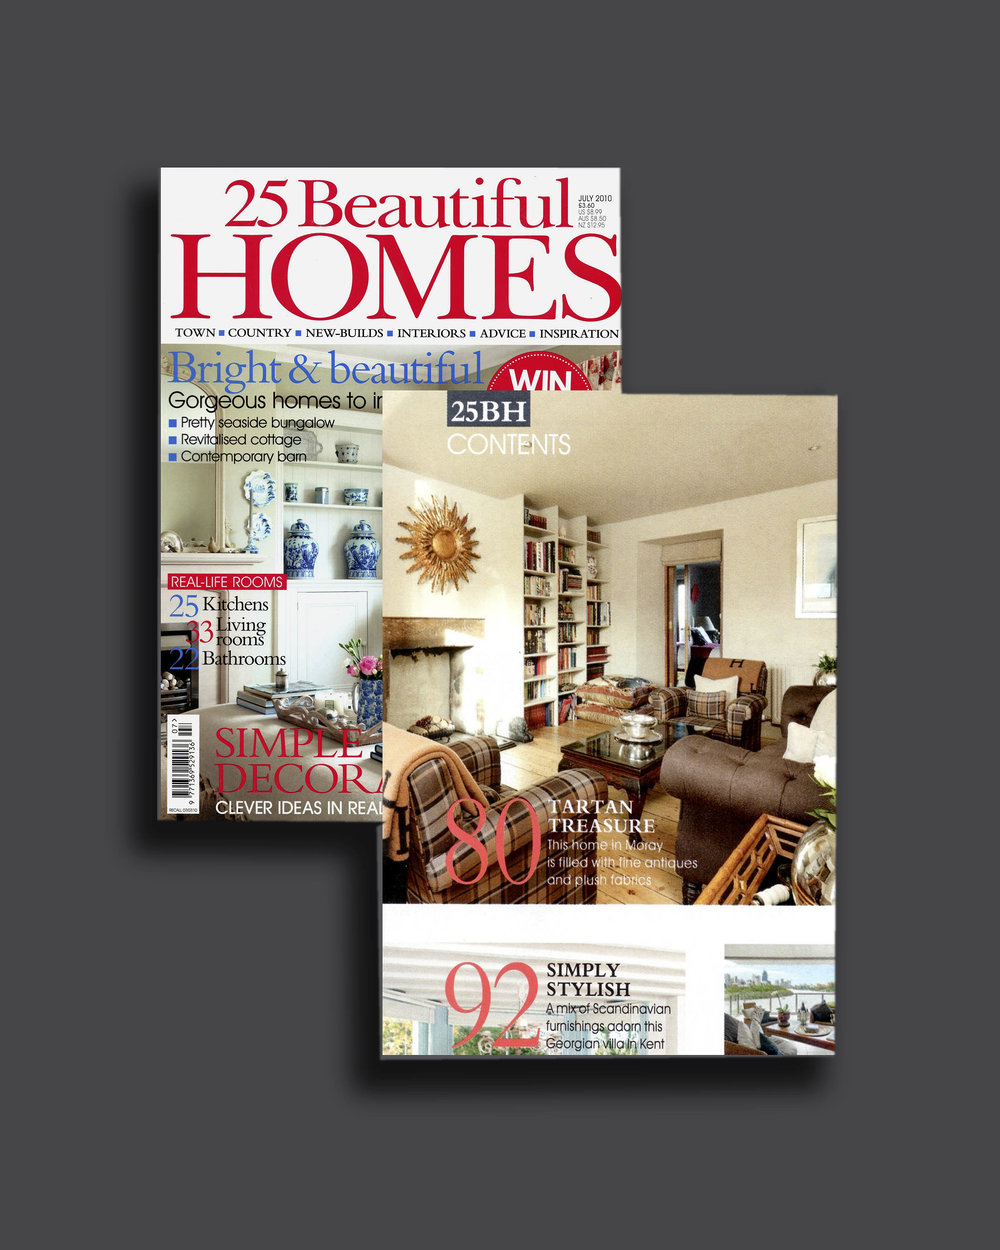 press 26 - 25 Beautiful Homes.jpg